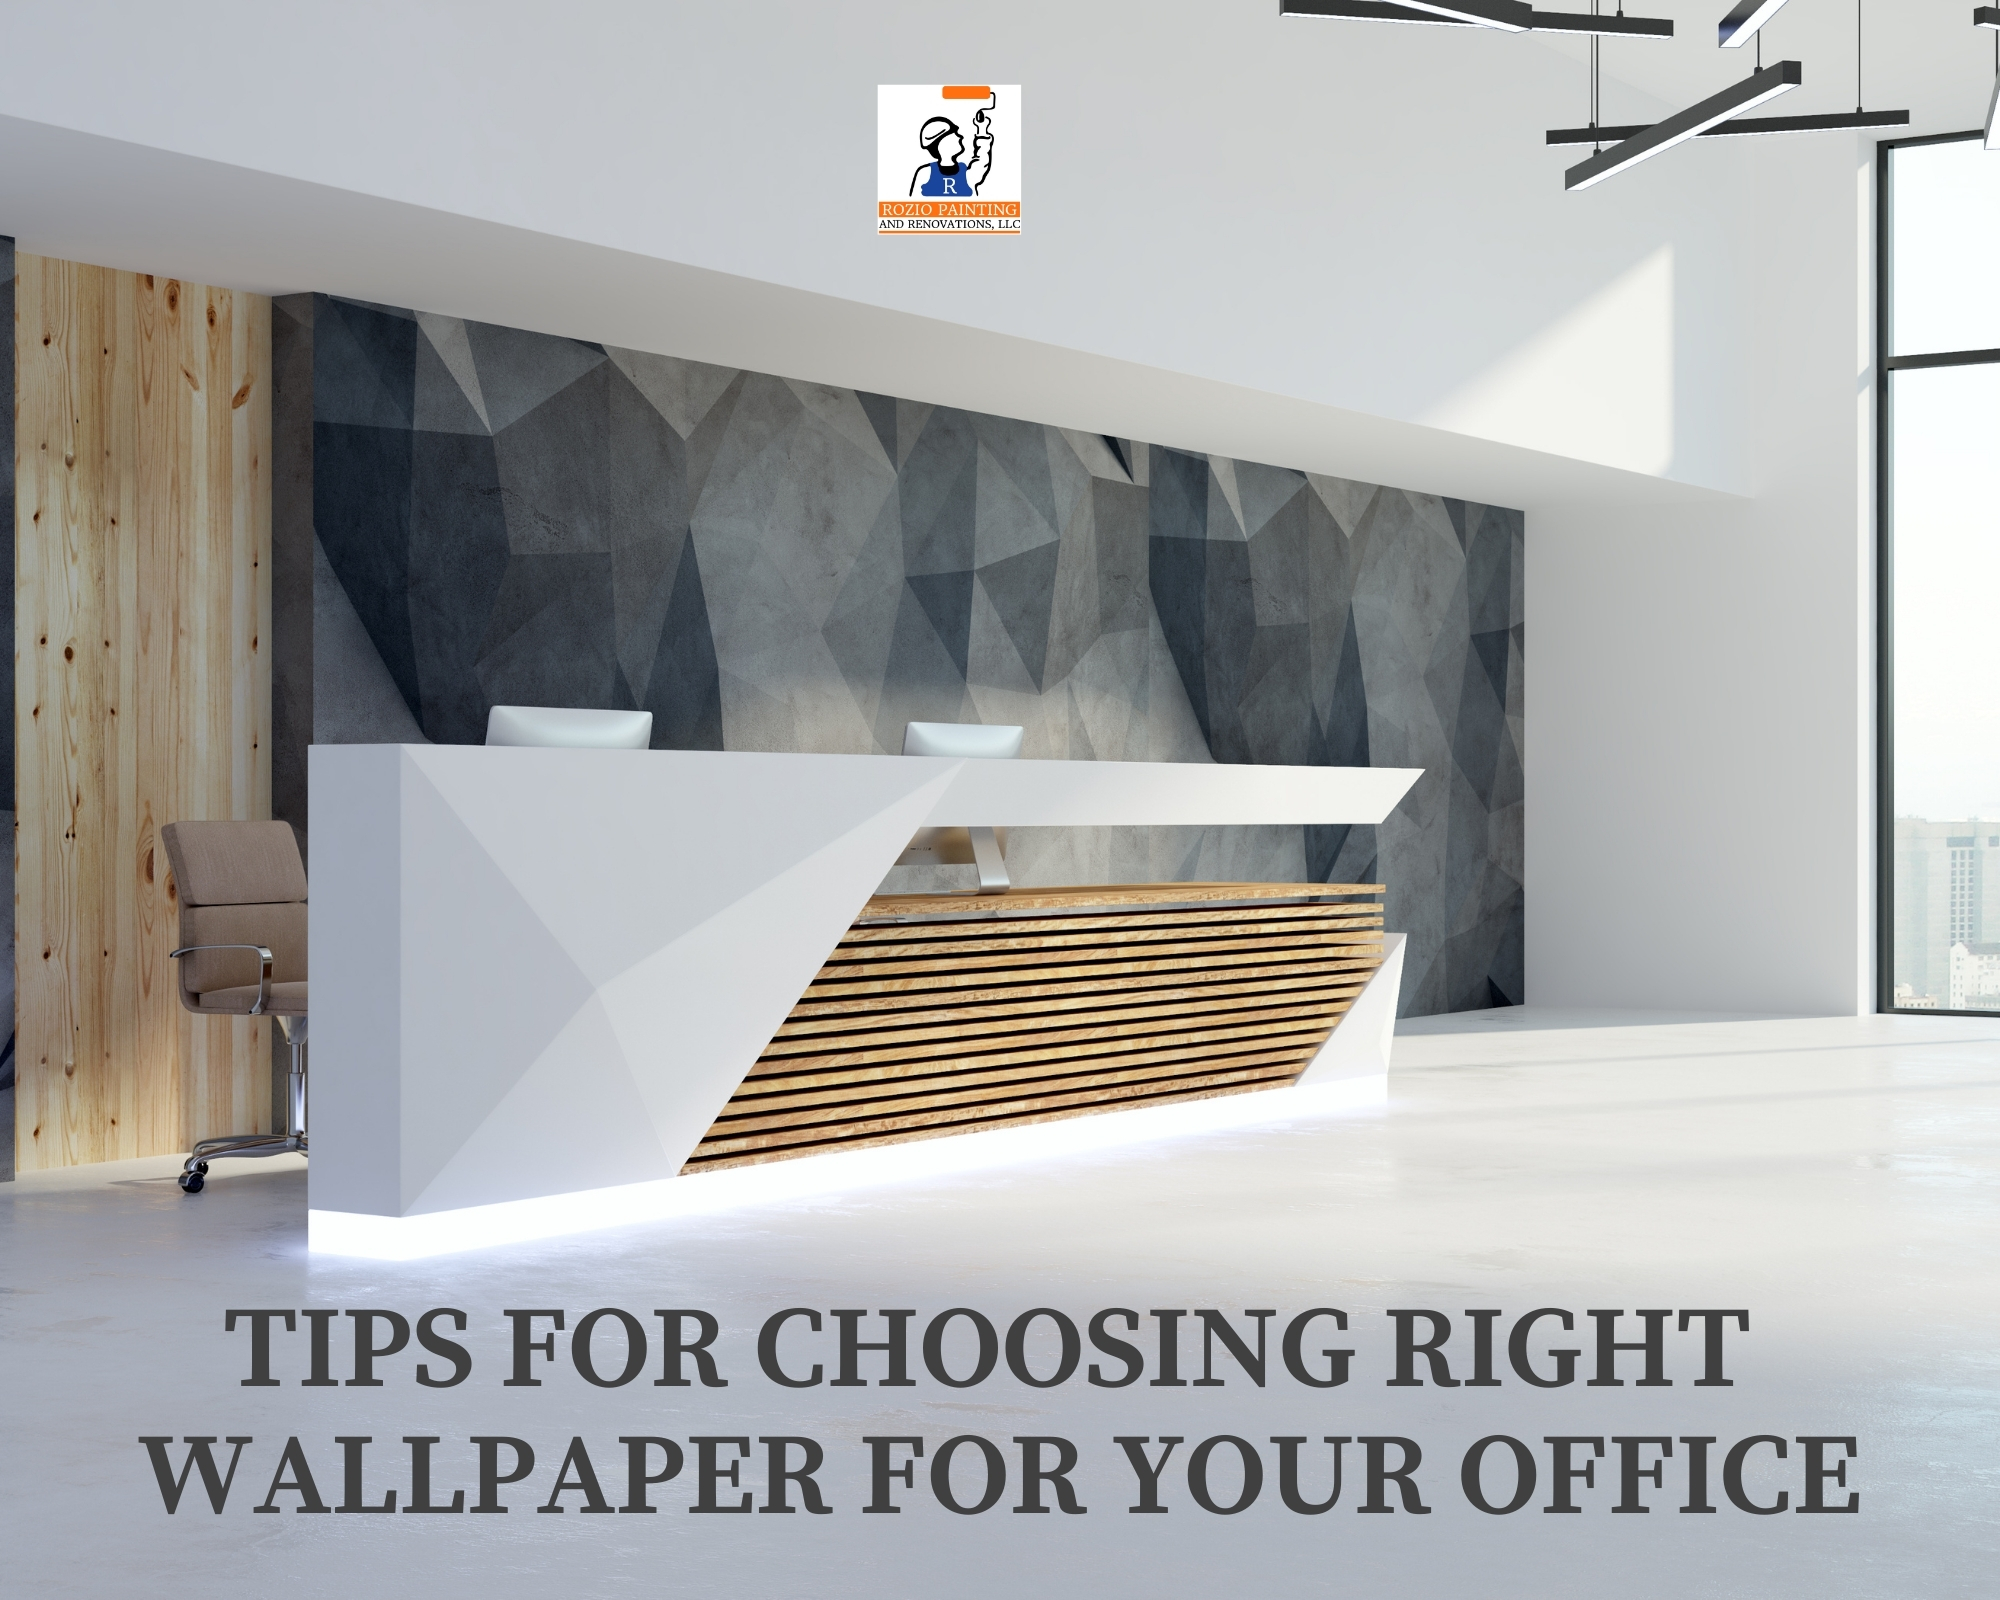 Tips for choosing right wallpaper for your office